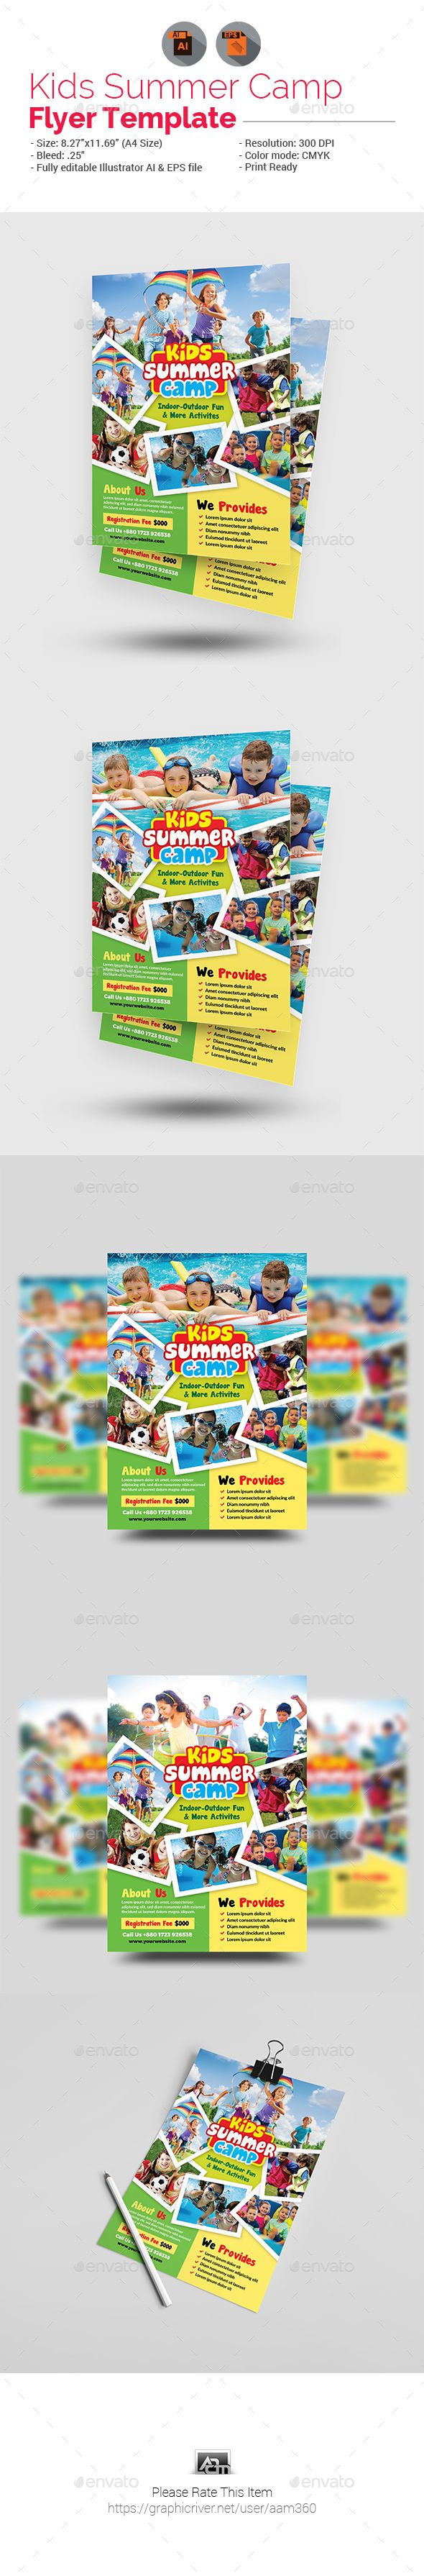 Best Kids Summer Camp Print Templates Images On